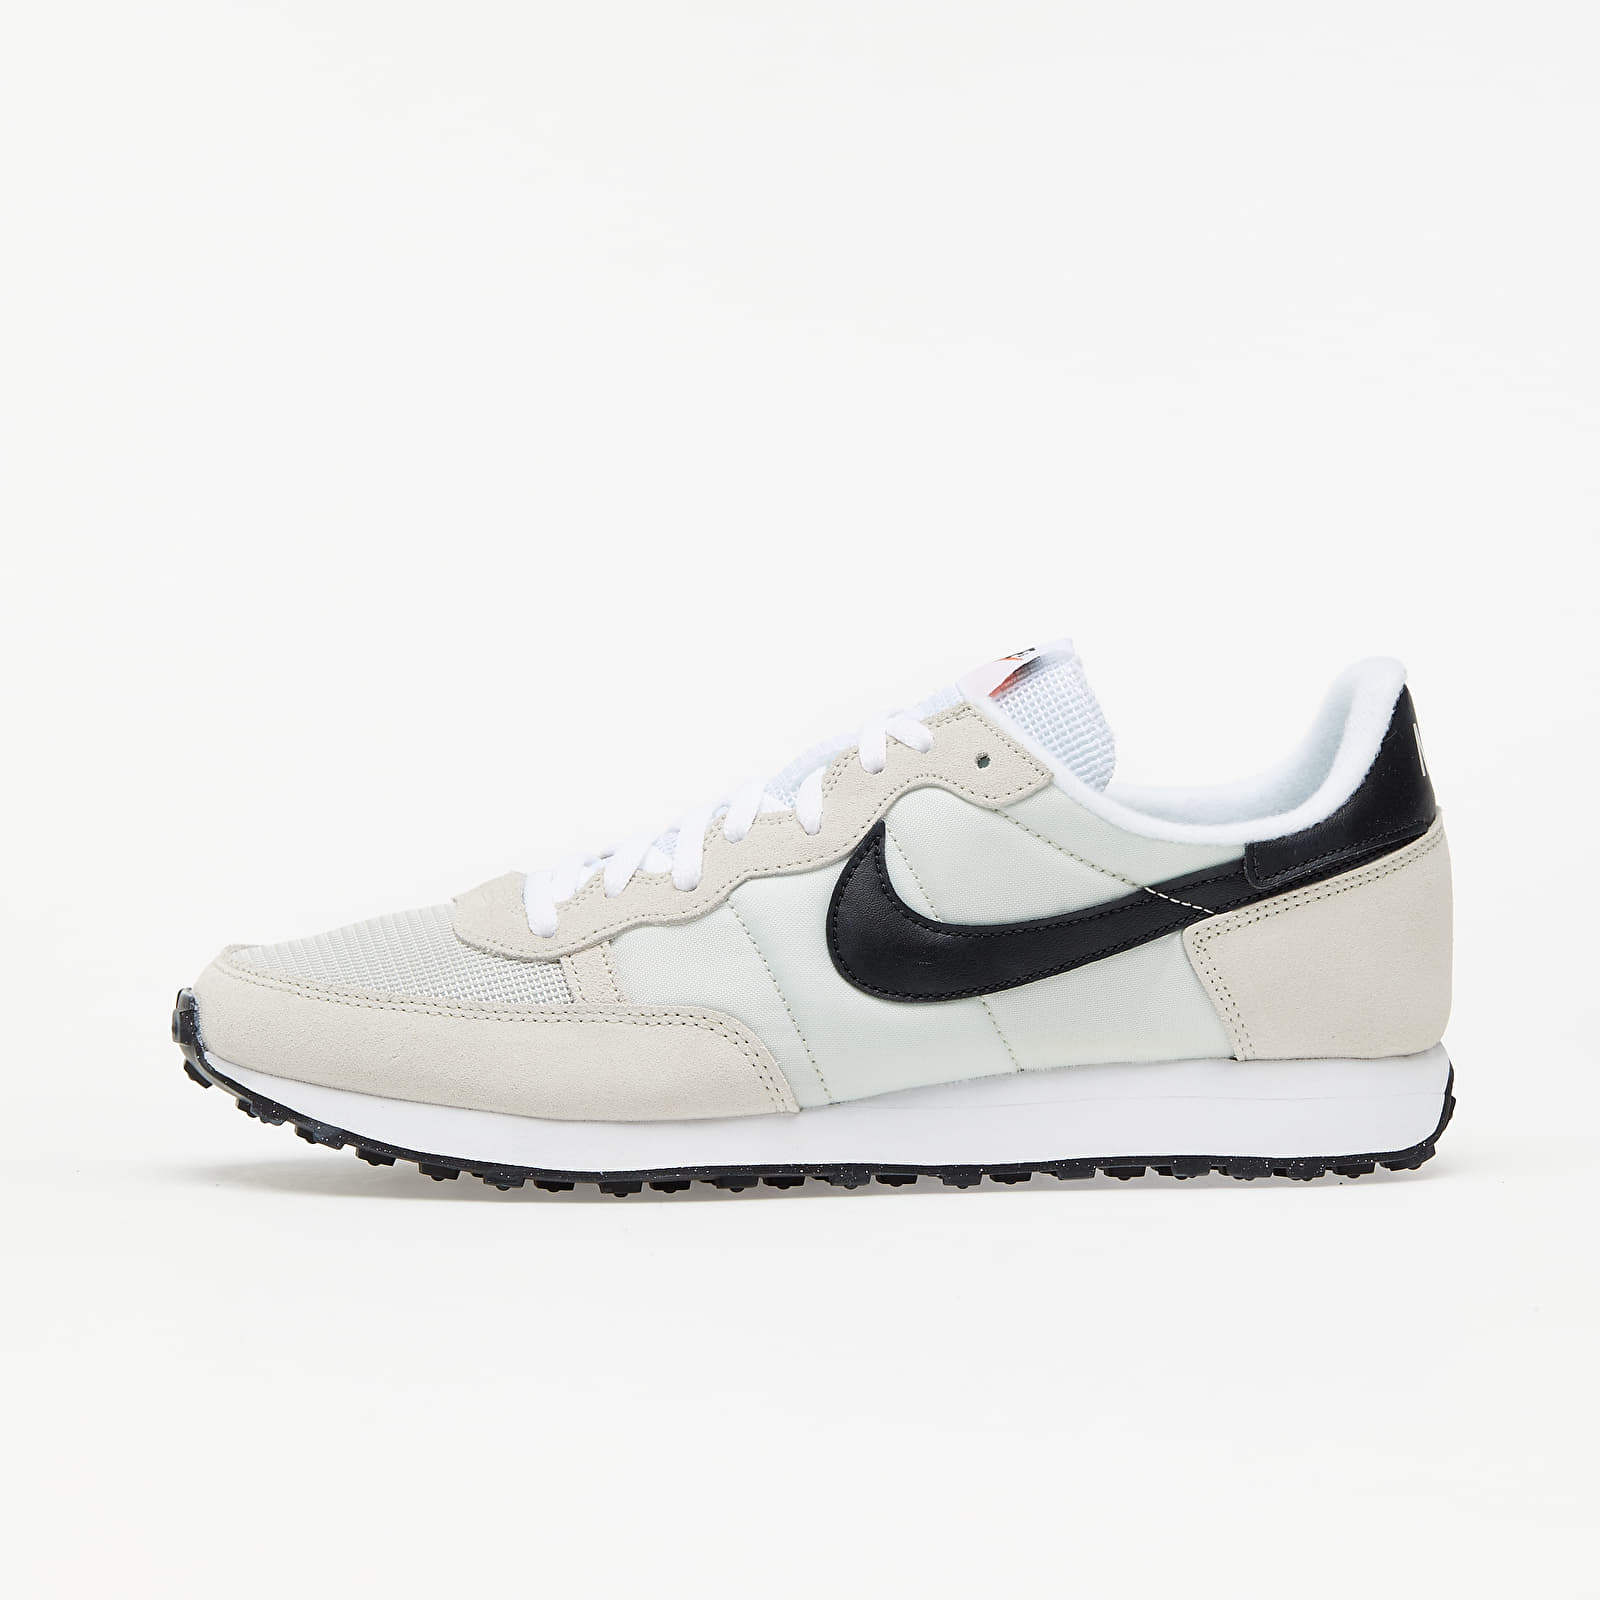 Nike Challenger OG Light Bone/ Black-White EUR 40.5